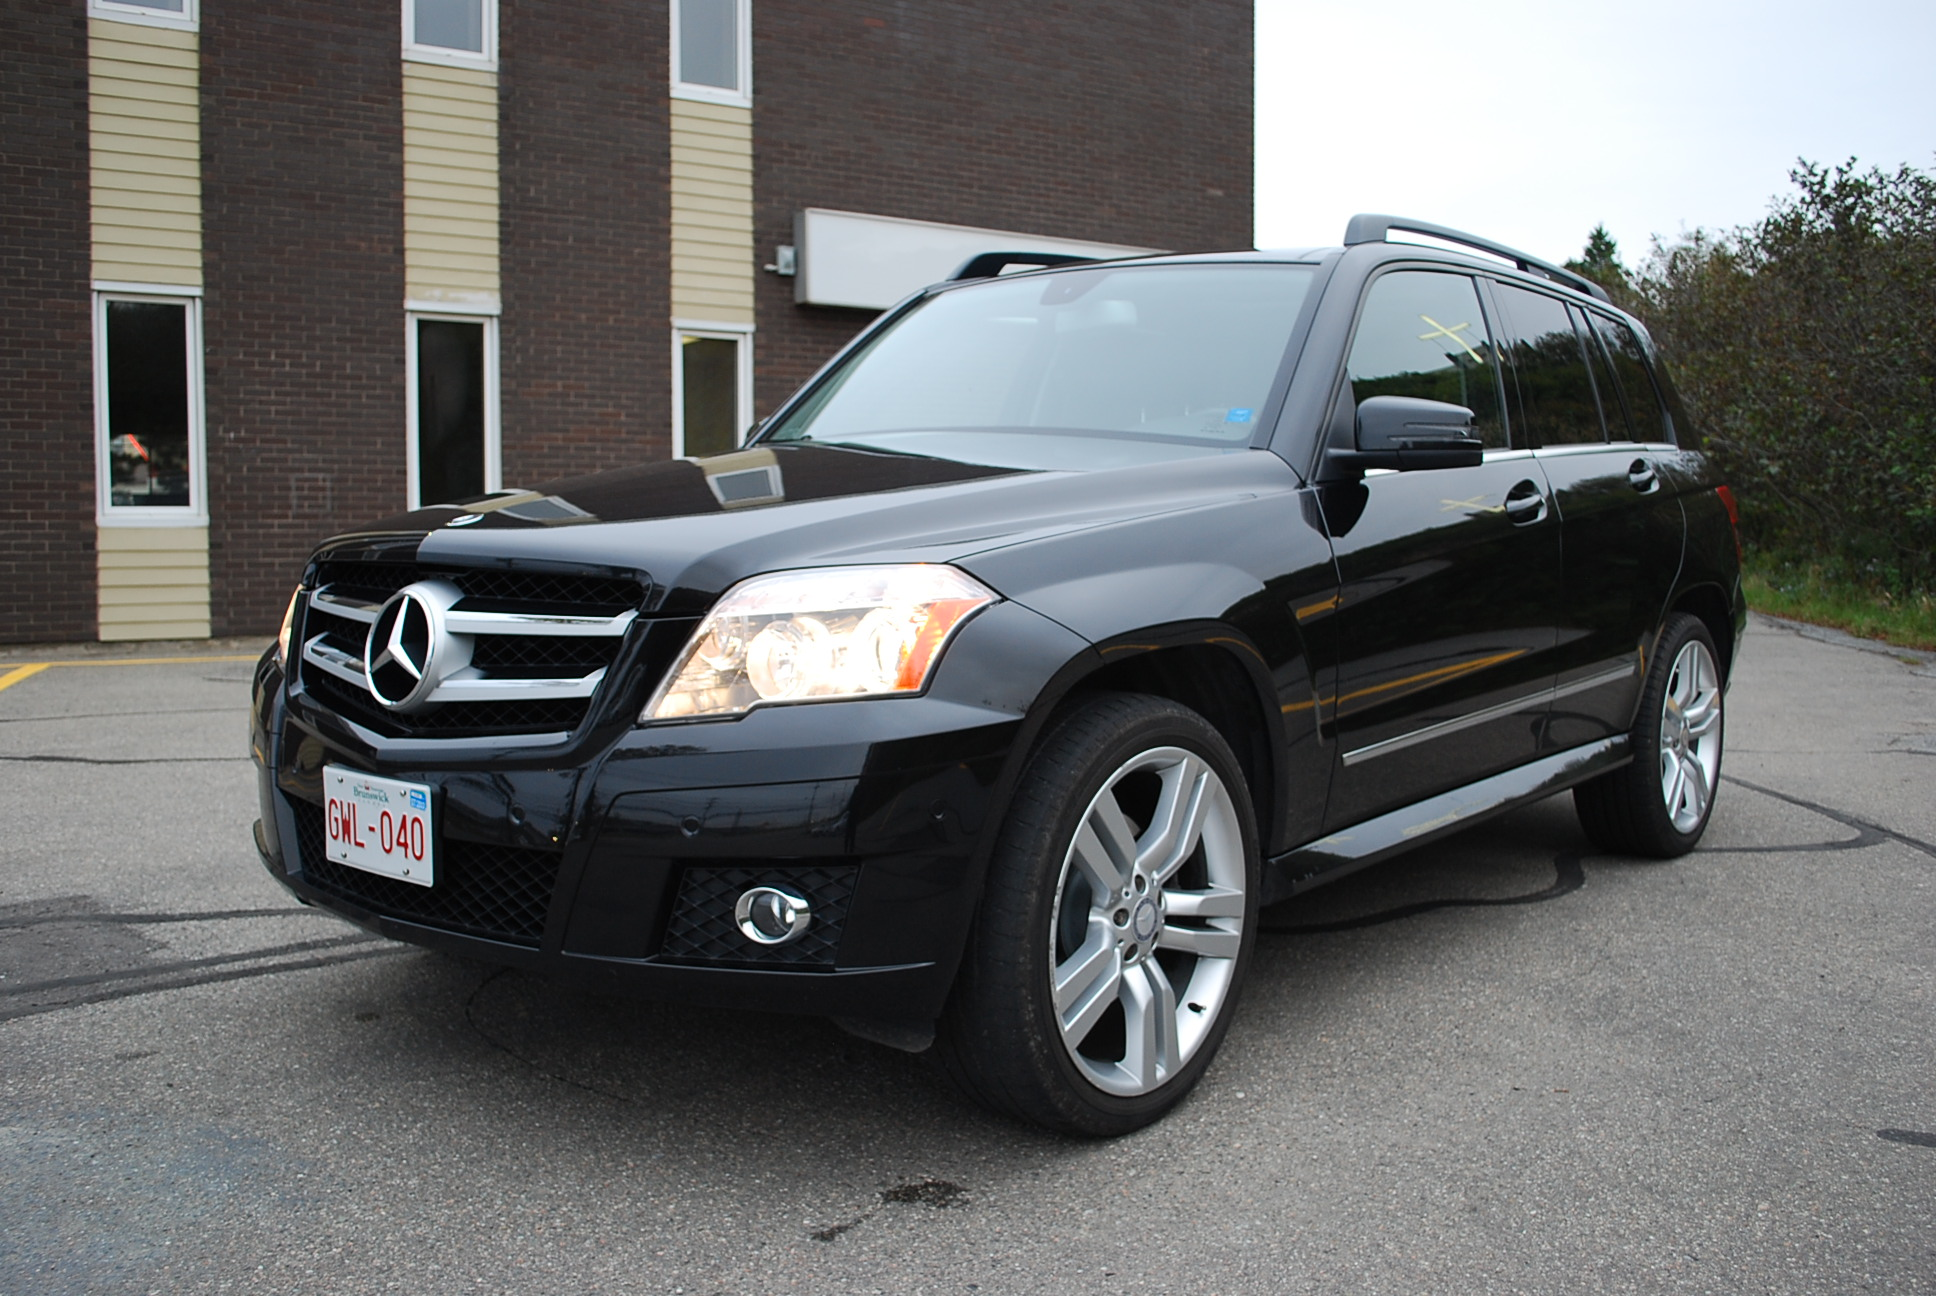 Used 2010 mercedes benz glk350 for sale in saint john nb for Mercedes benz glk350 2010